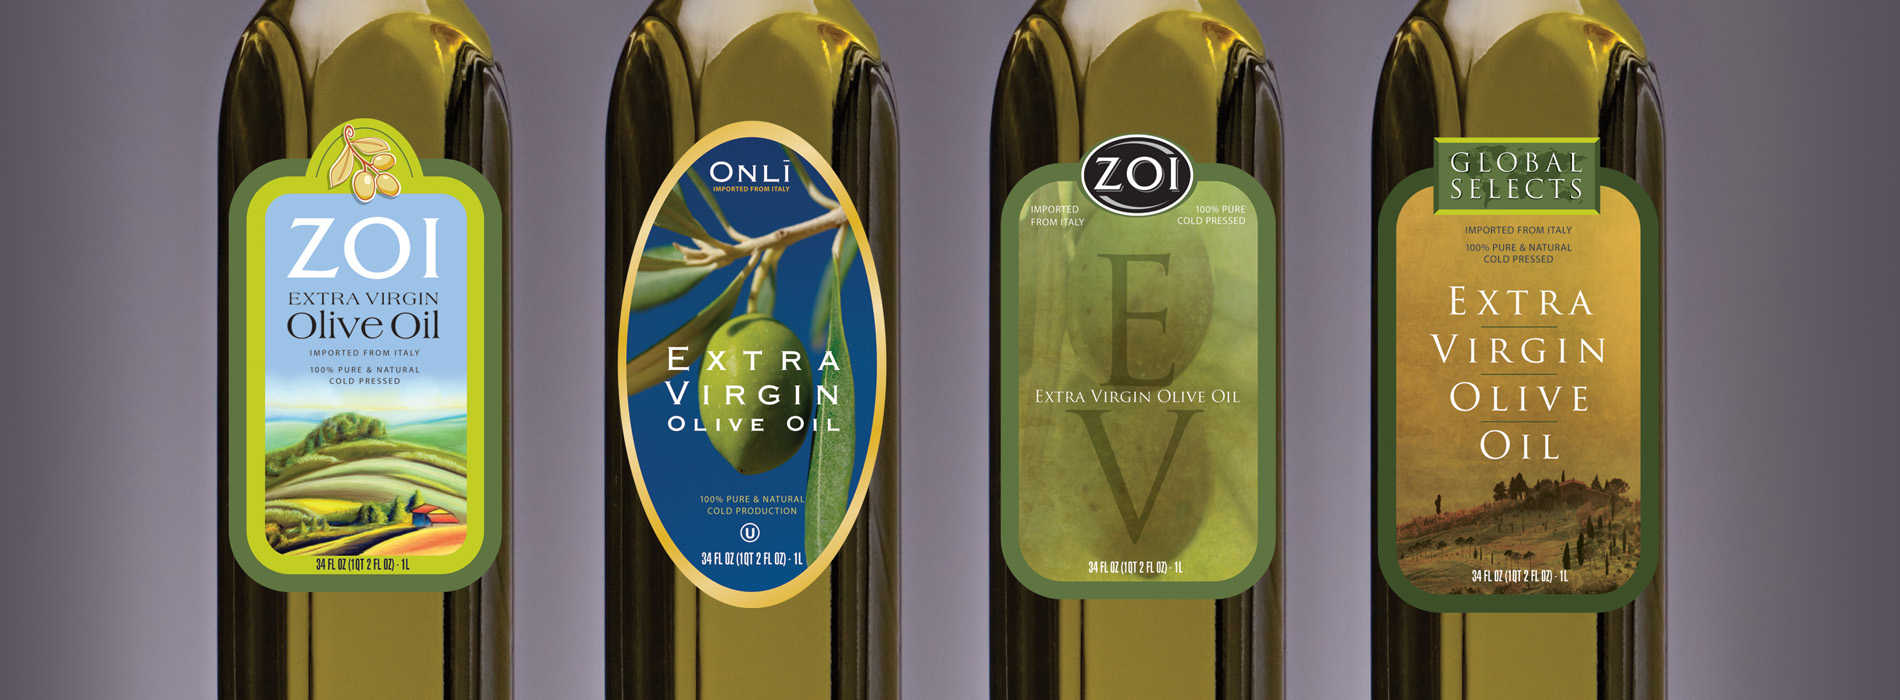 Home_OliveOil